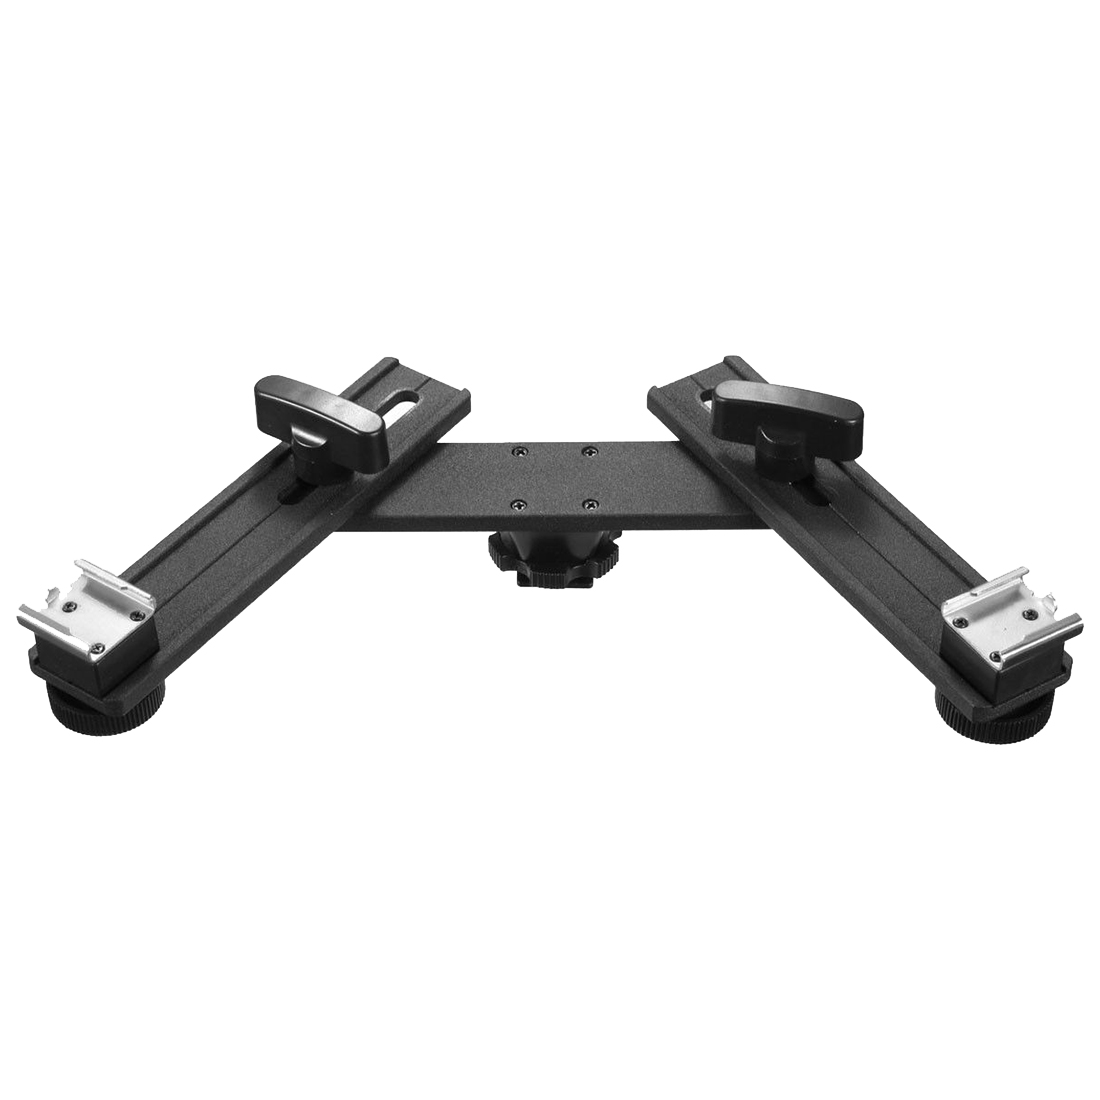 13 inch Twin Speed Light Flash Hot Shoe Mounting Bracket Mount Holder Studio13 inch Twin Speed Light Flash Hot Shoe Mounting Bracket Mount Holder Studio